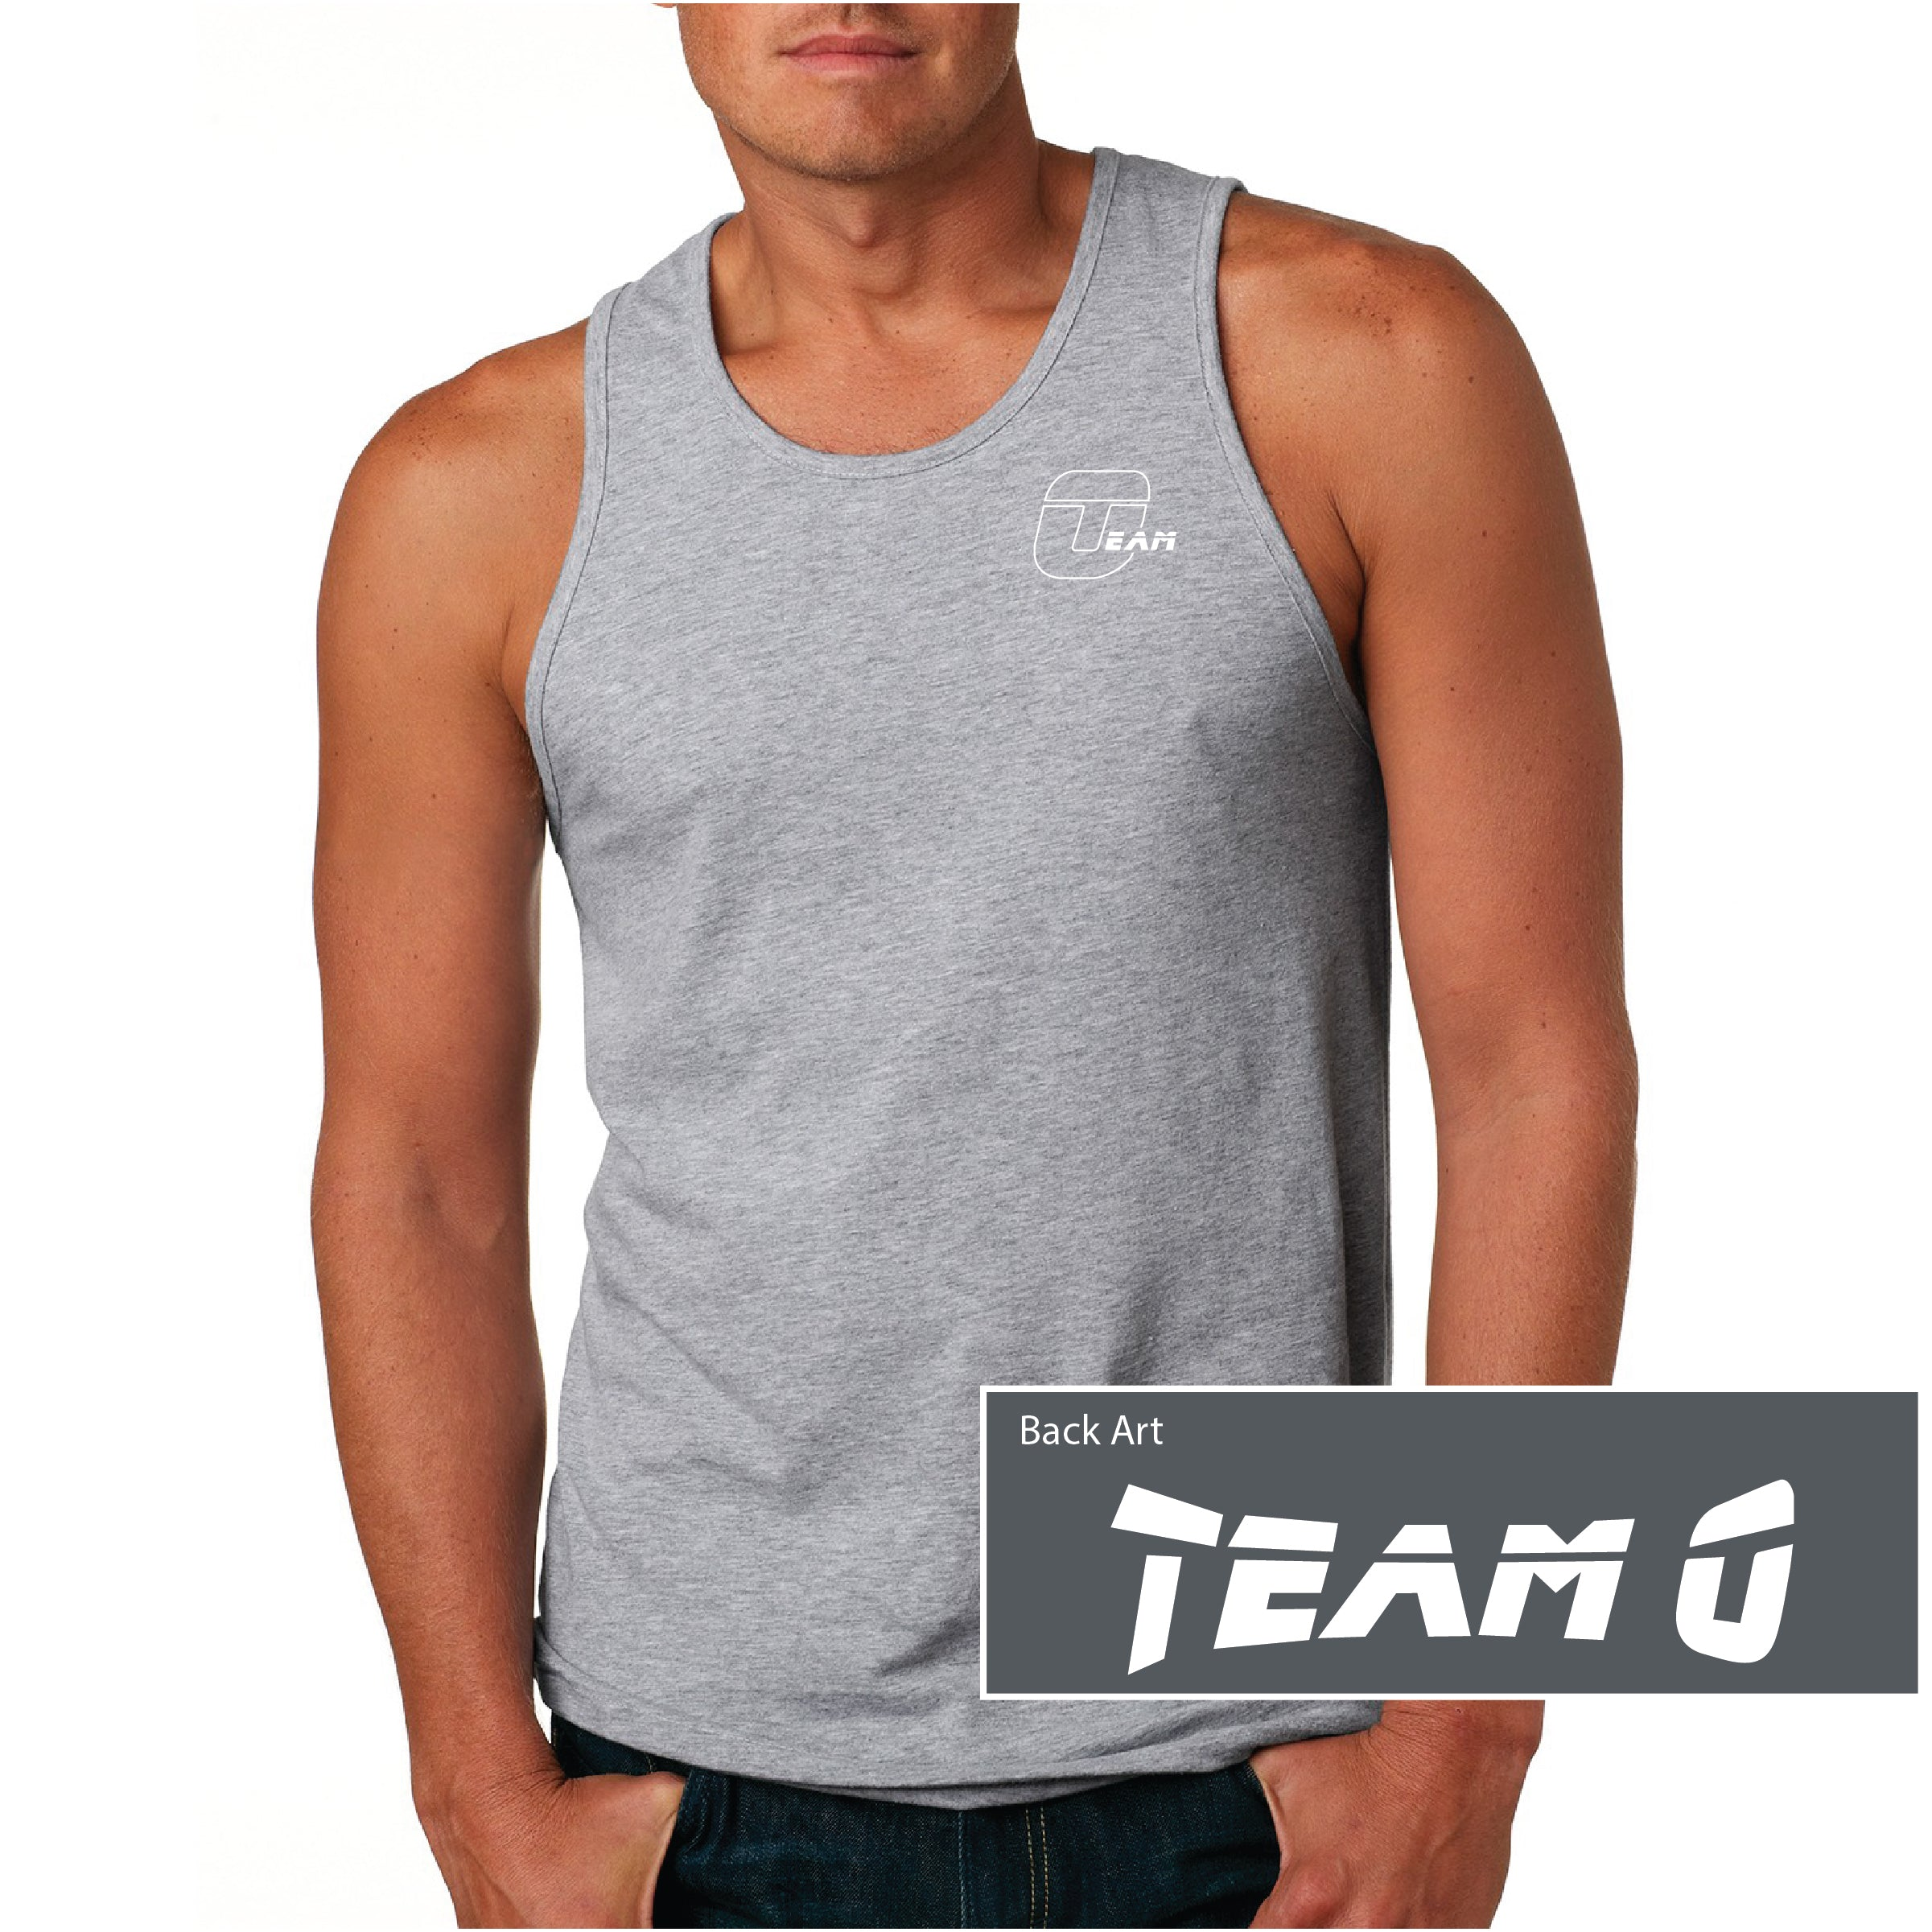 Team O Next Level Men's Cotton Tank